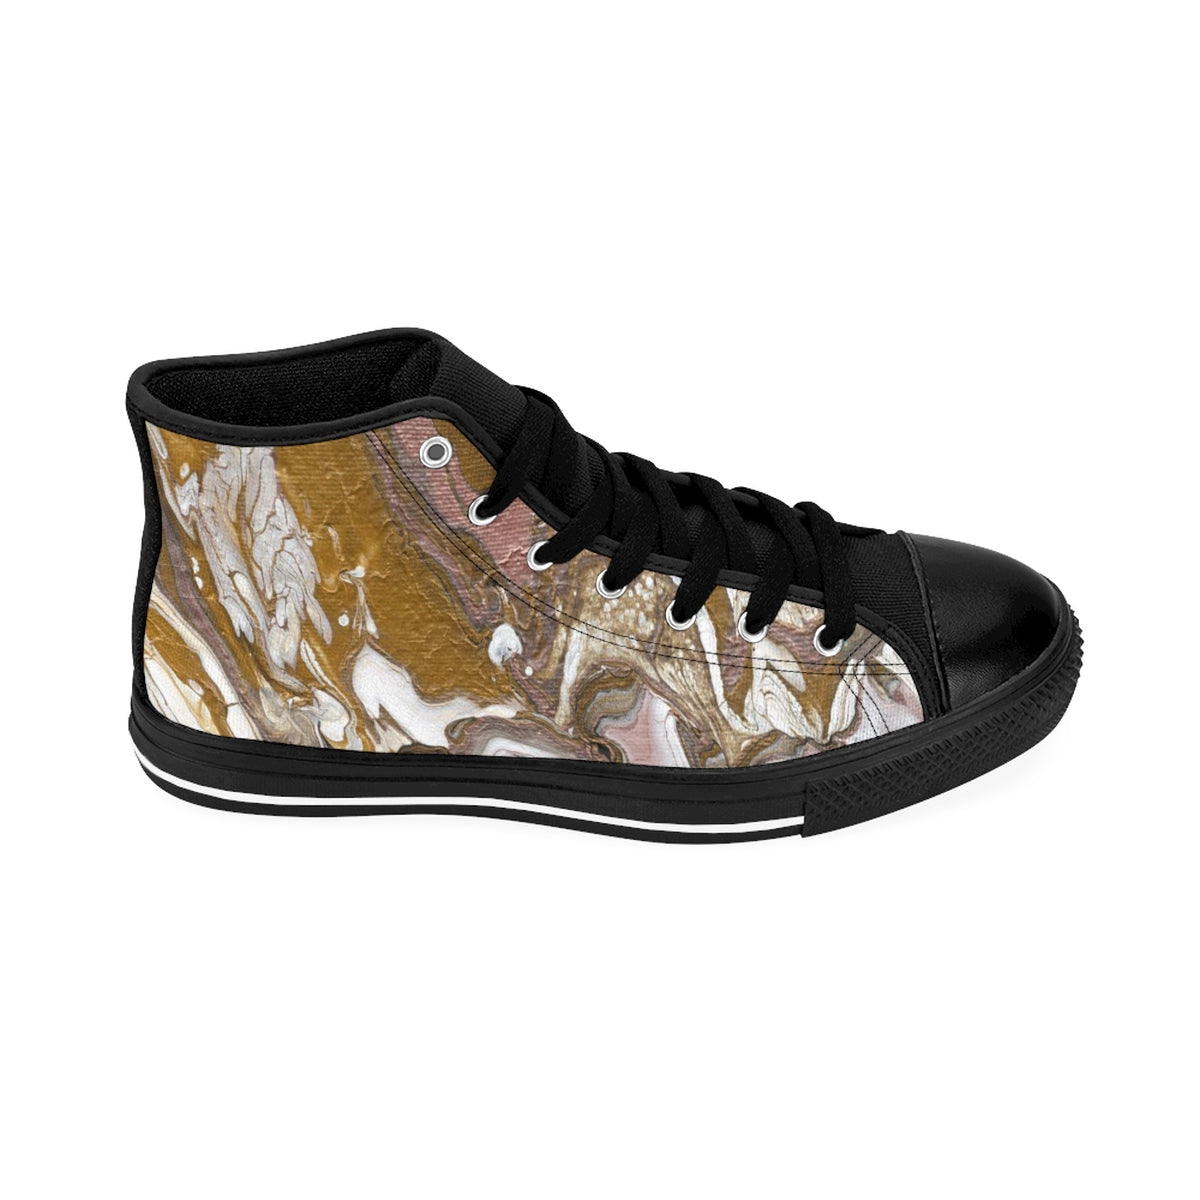 GOLD RUSH  Unisex High-top Sneakers  SIZES  6 - 12